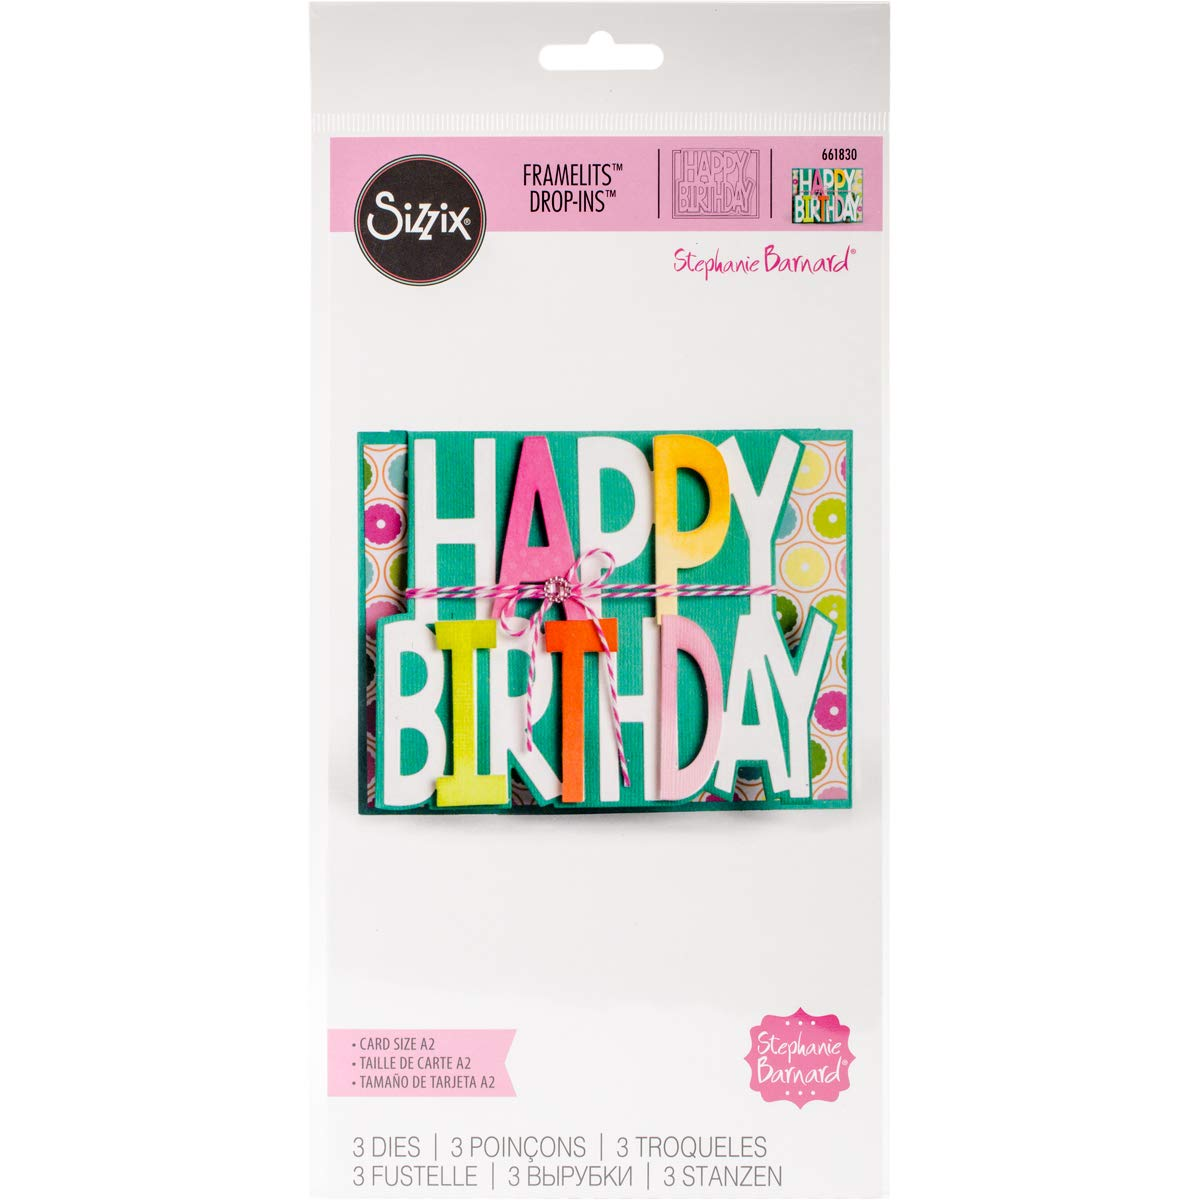 Sizzix HBday SB Framelits Die Card Drop-ins